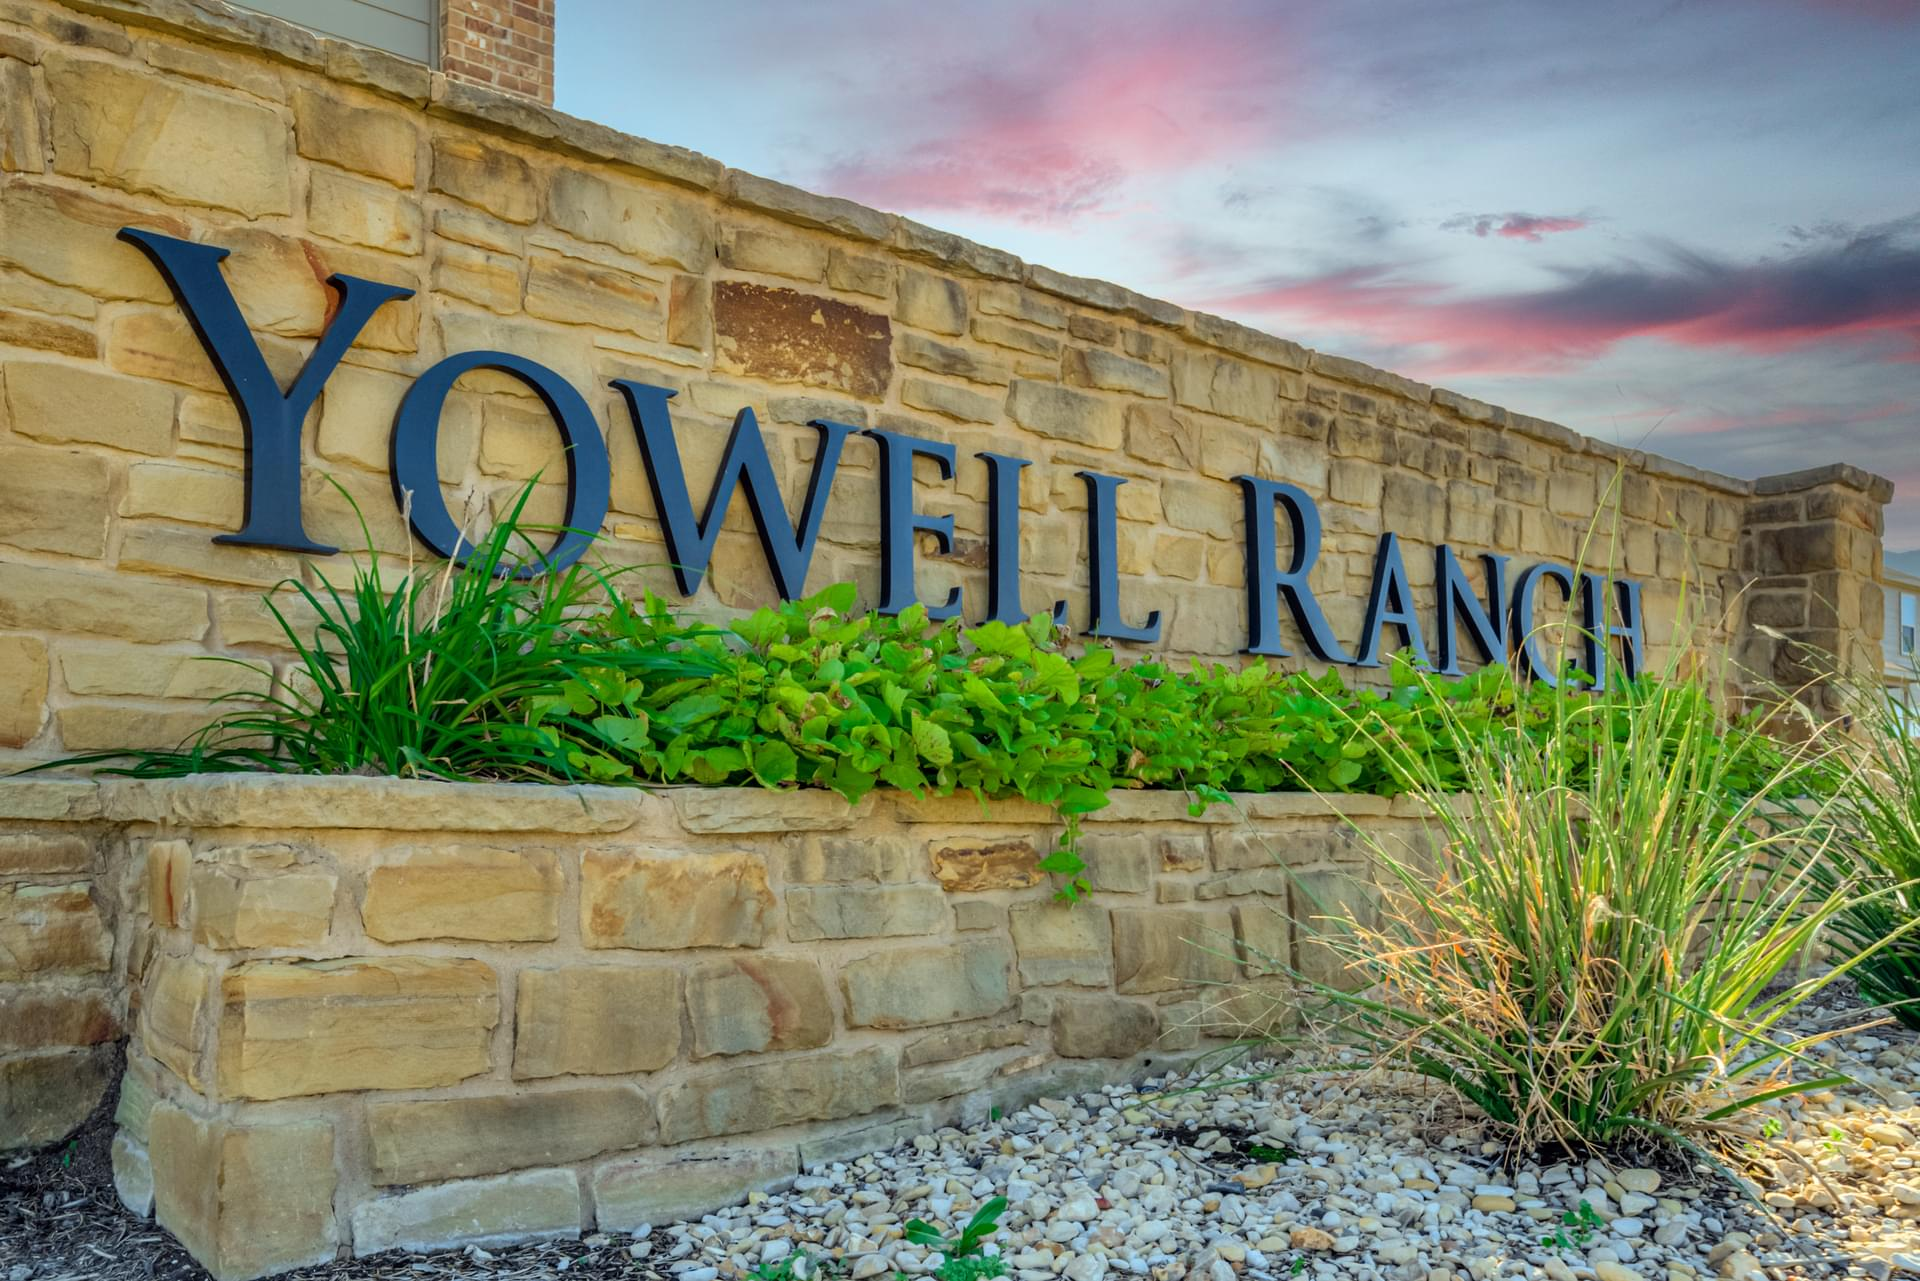 Yowell Ranch in Killeen, TX